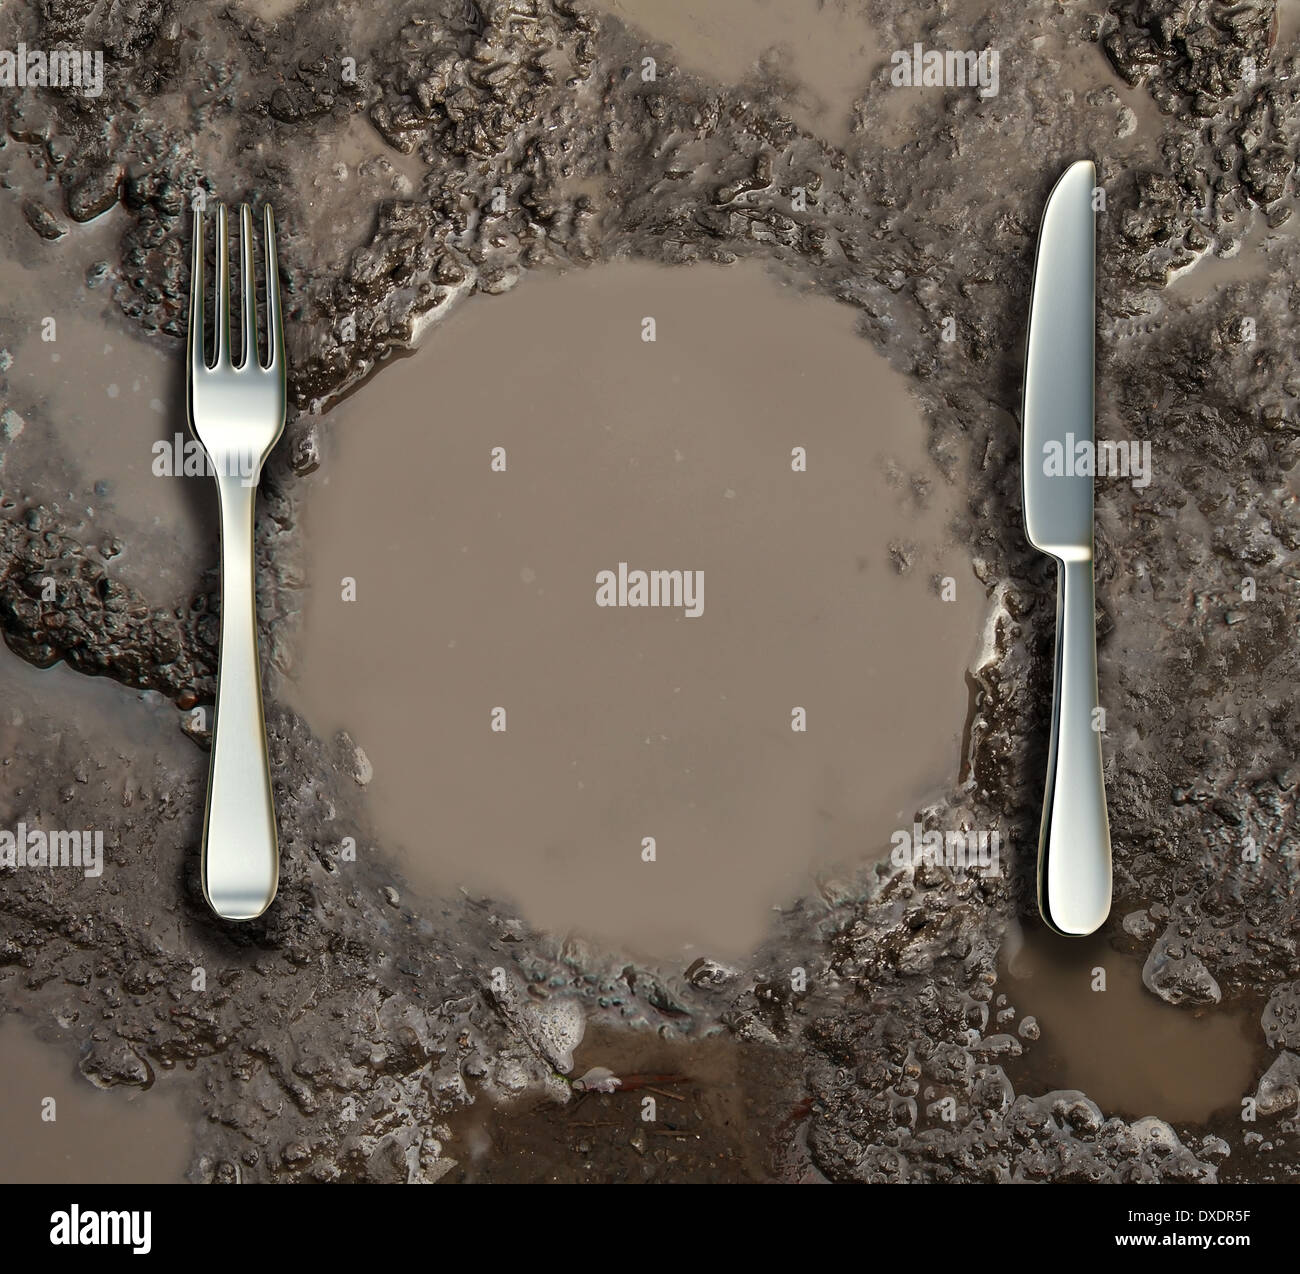 Food sanitation concept and global poverty symbol as a wet ground with a mud puddle of dirty water shaped as a dinner plate with a silver fork and knife as a metaphor for contamination health risk. - Stock Image